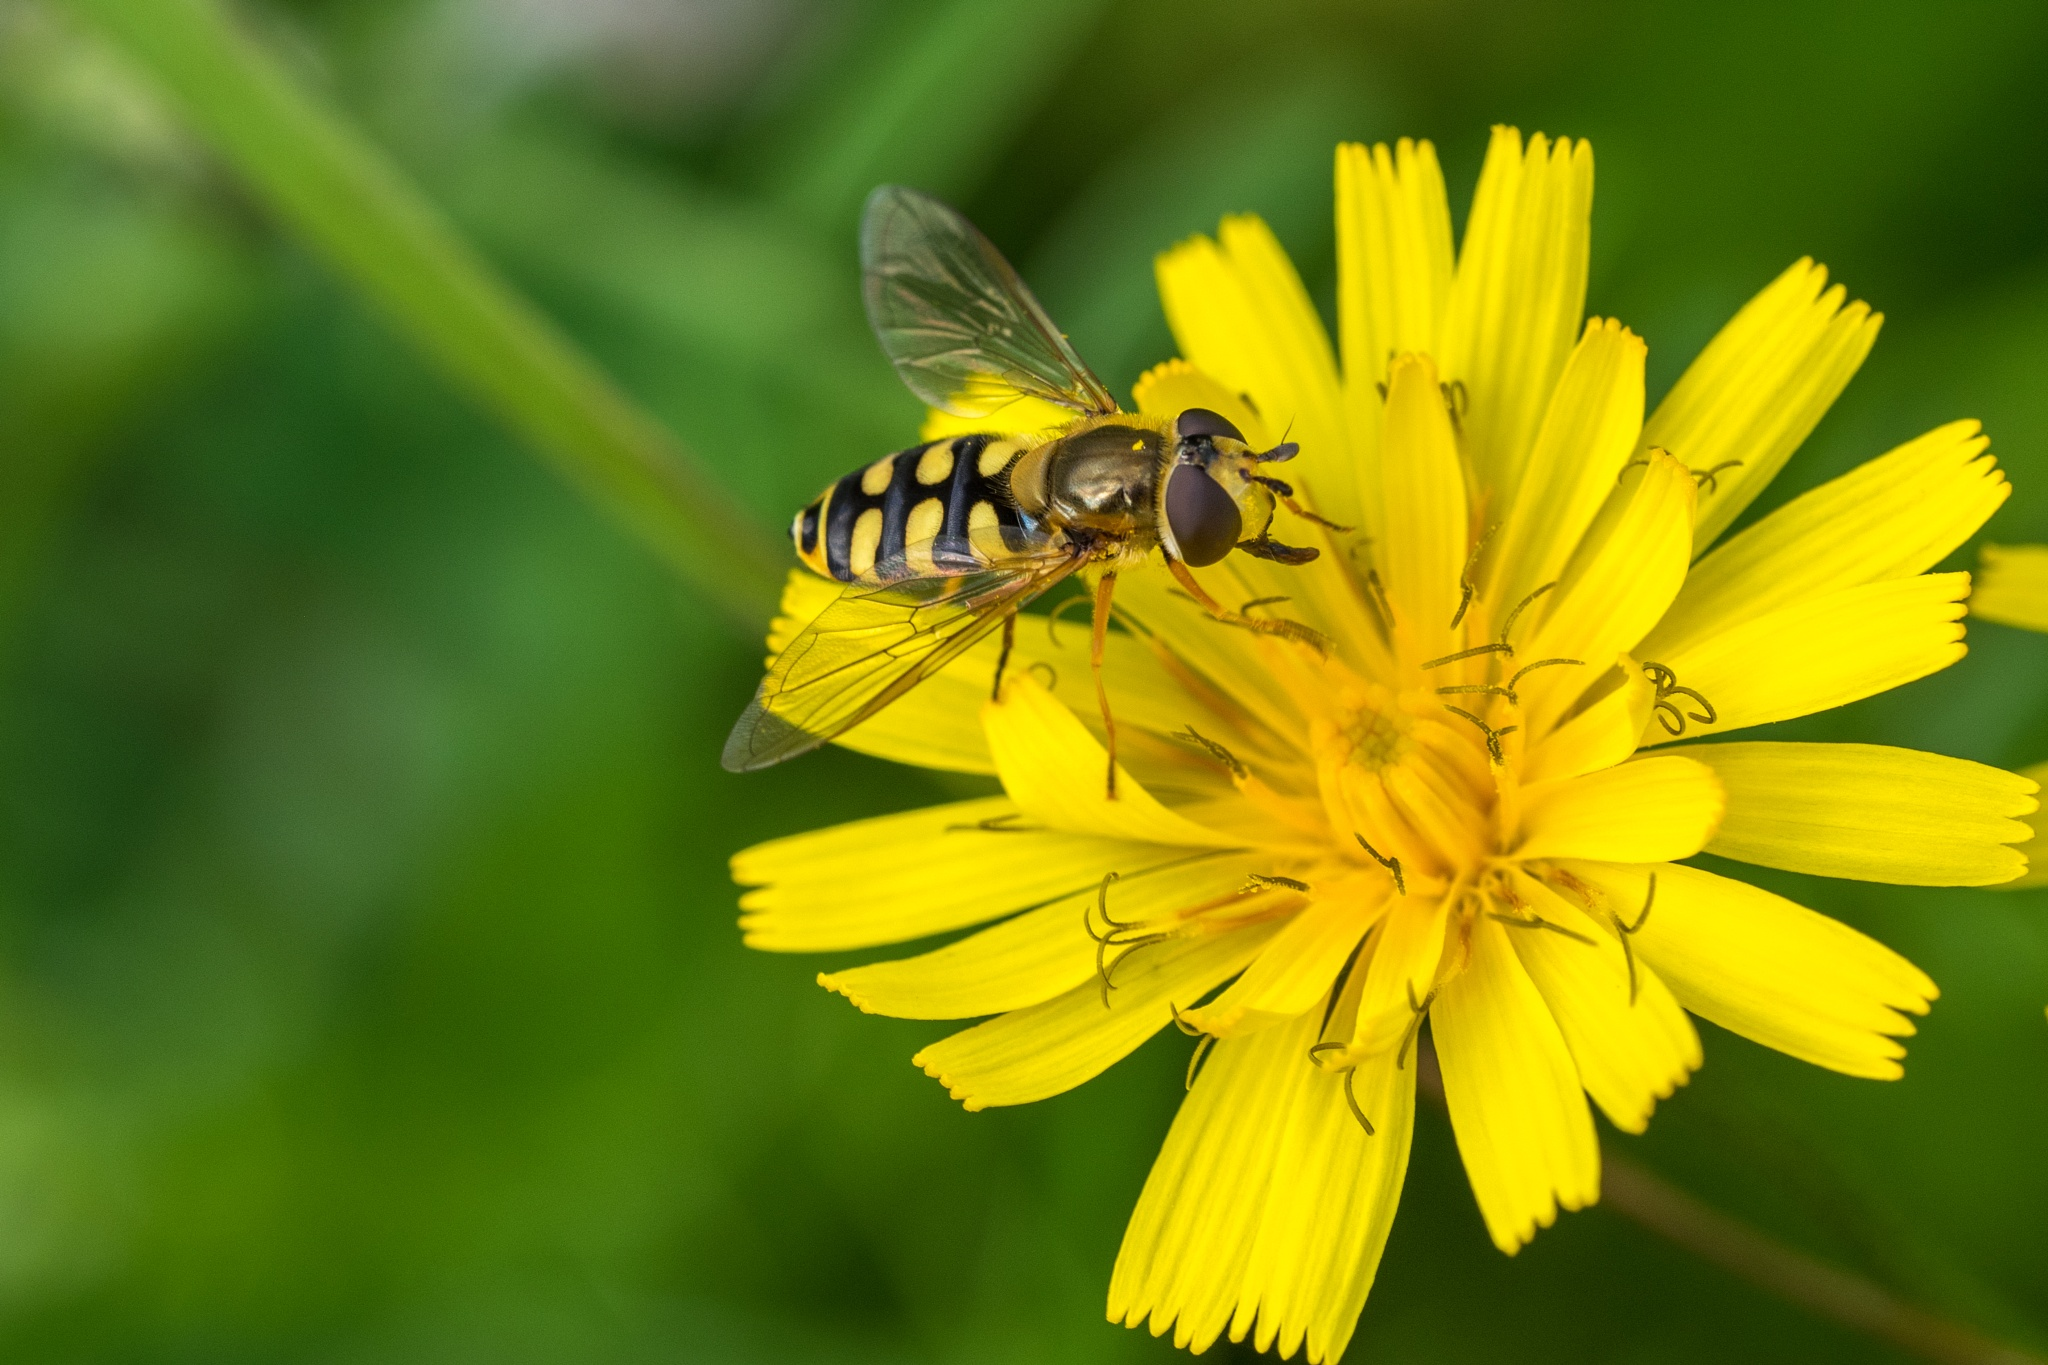 hoverfly by Werner Hofmann